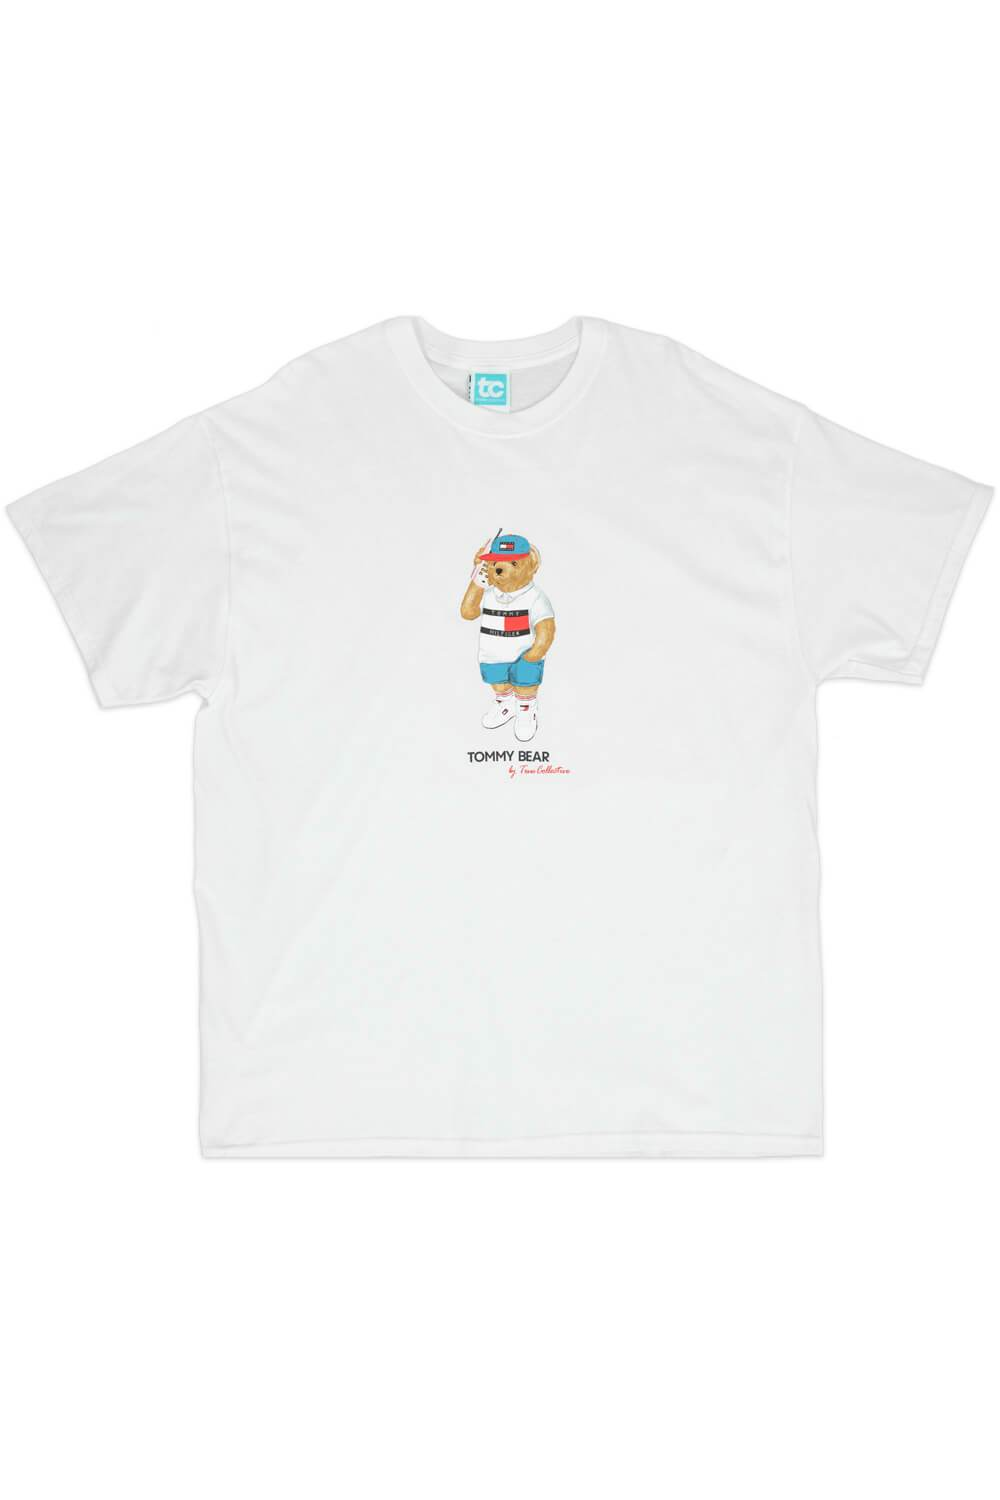 Tommy Bear T-shirt White